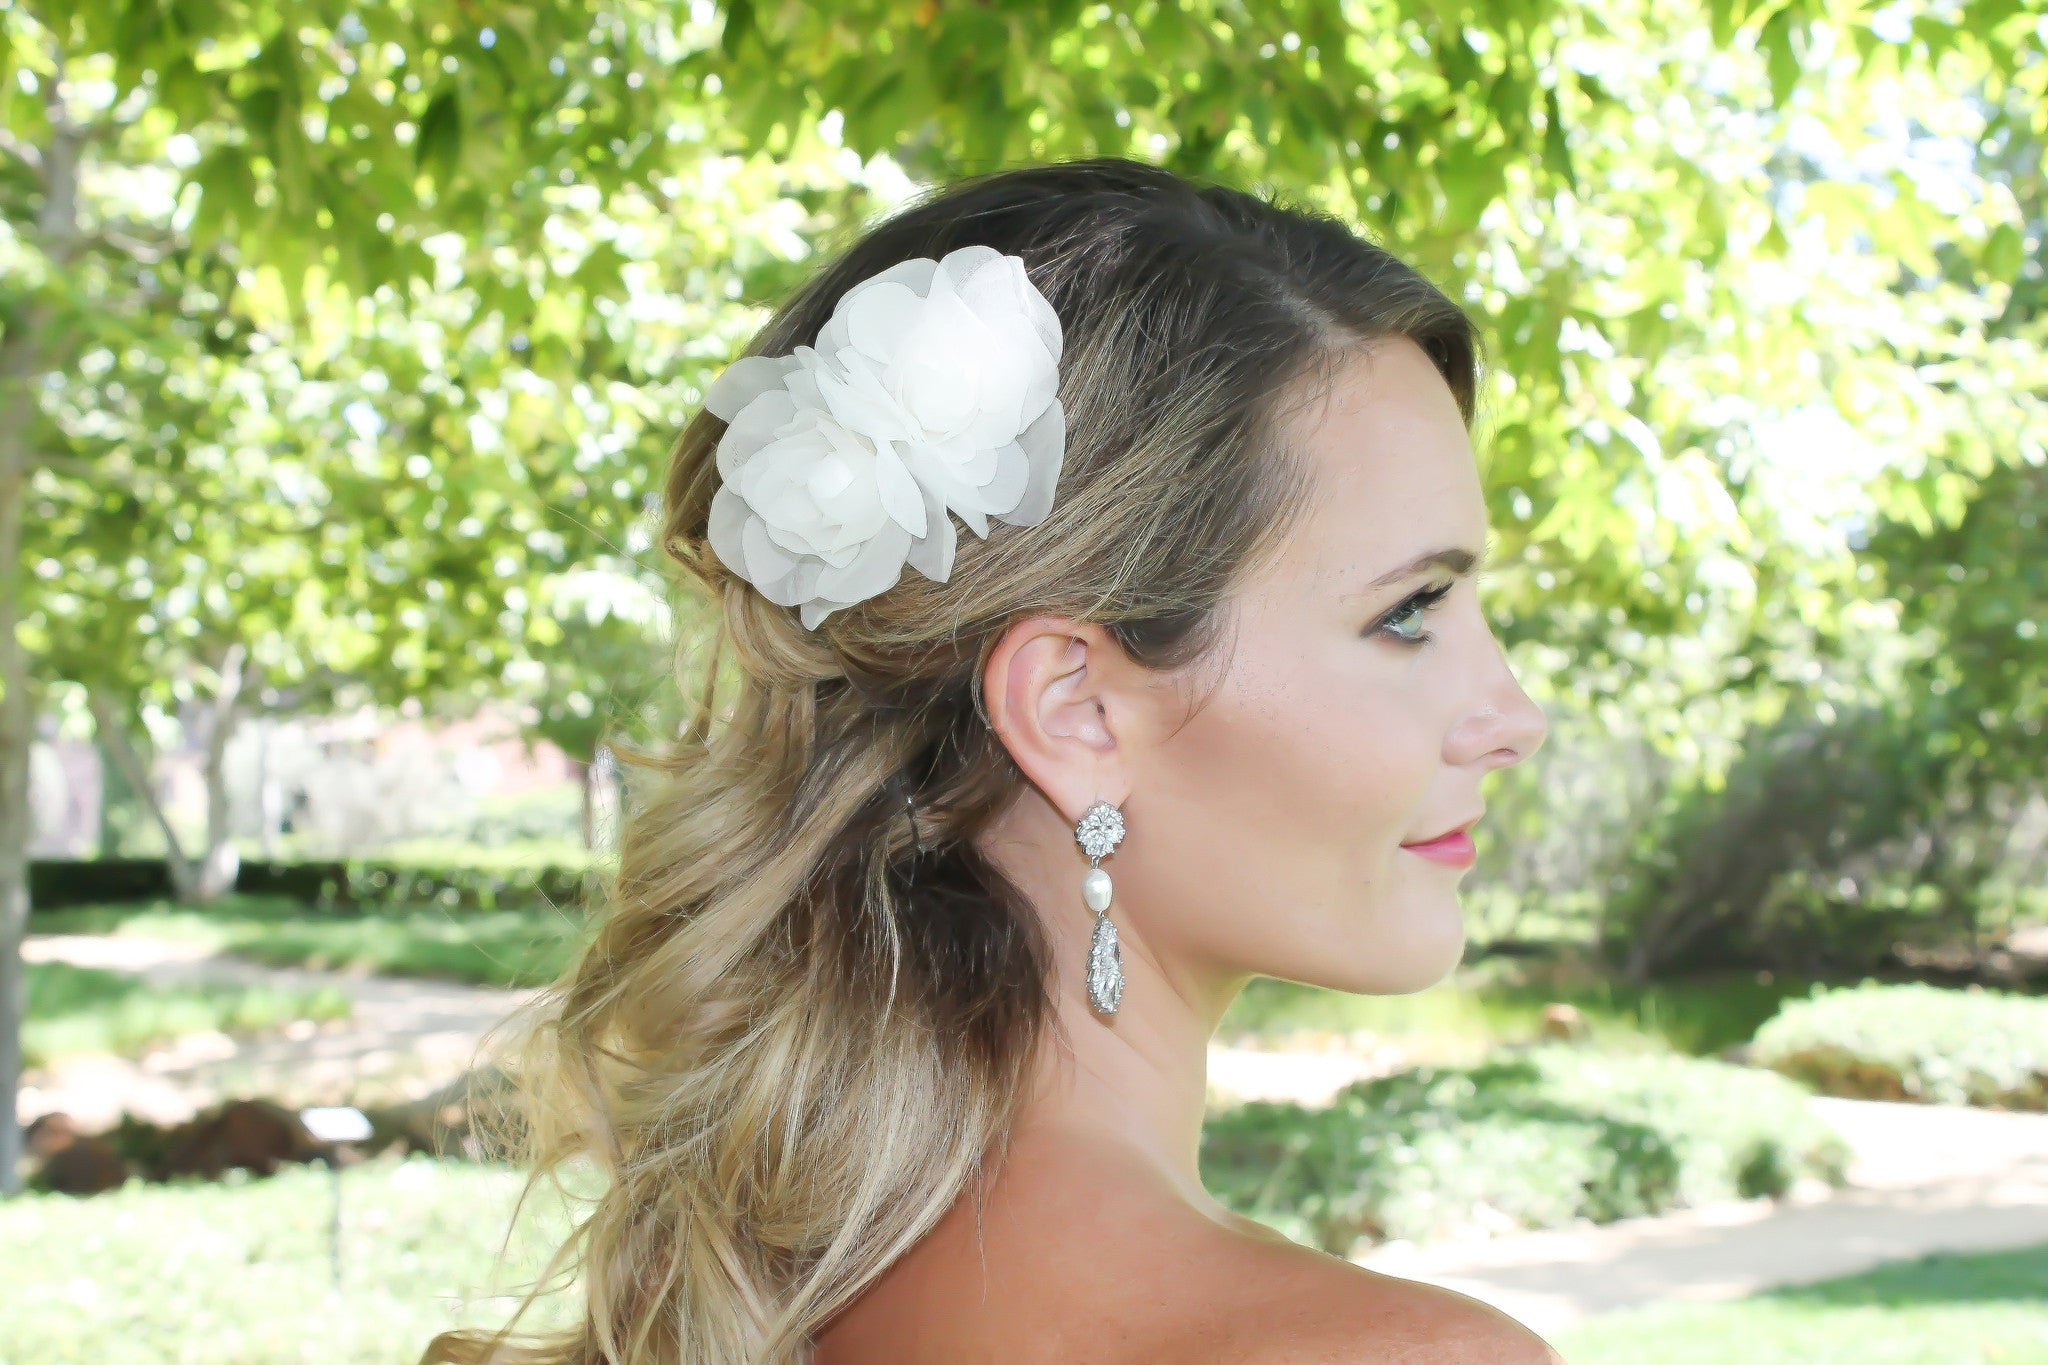 Wedding Hair Accessories Silk Flowers Handmade - Bride Glamor